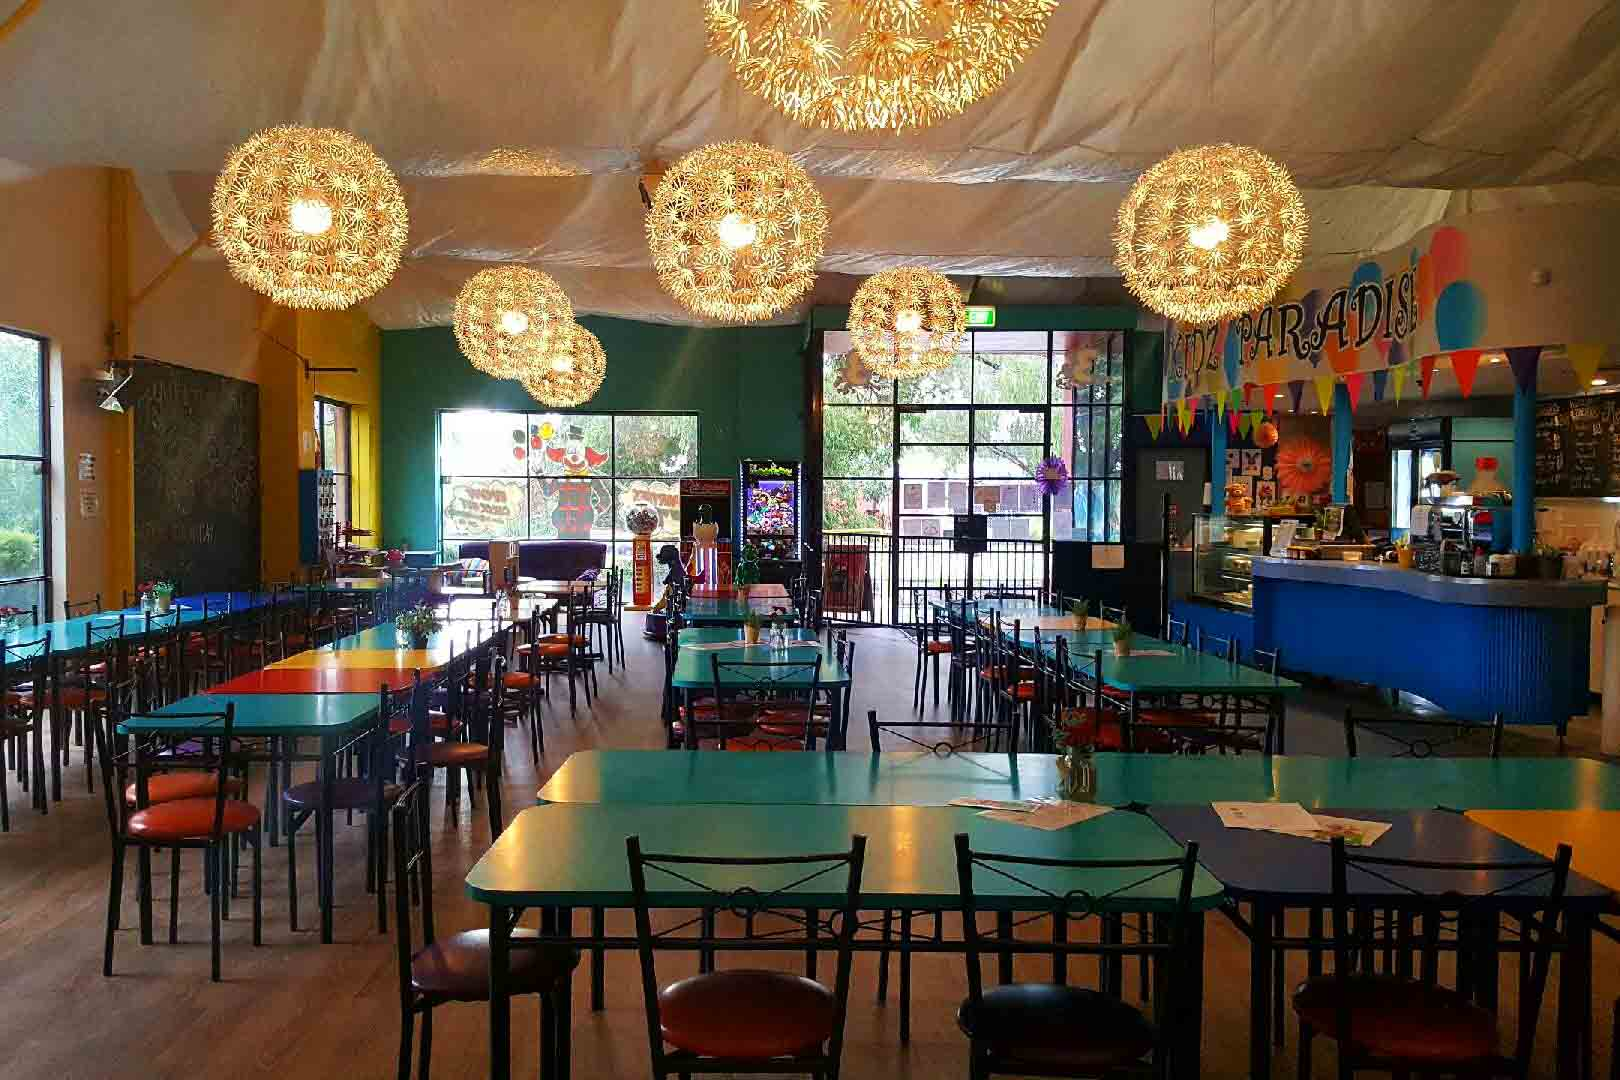 Beautiful Work Christmas Party Ideas Perth Part - 13: ... Kidz Paradise Indoor Cafe U0026 Play Centre ...